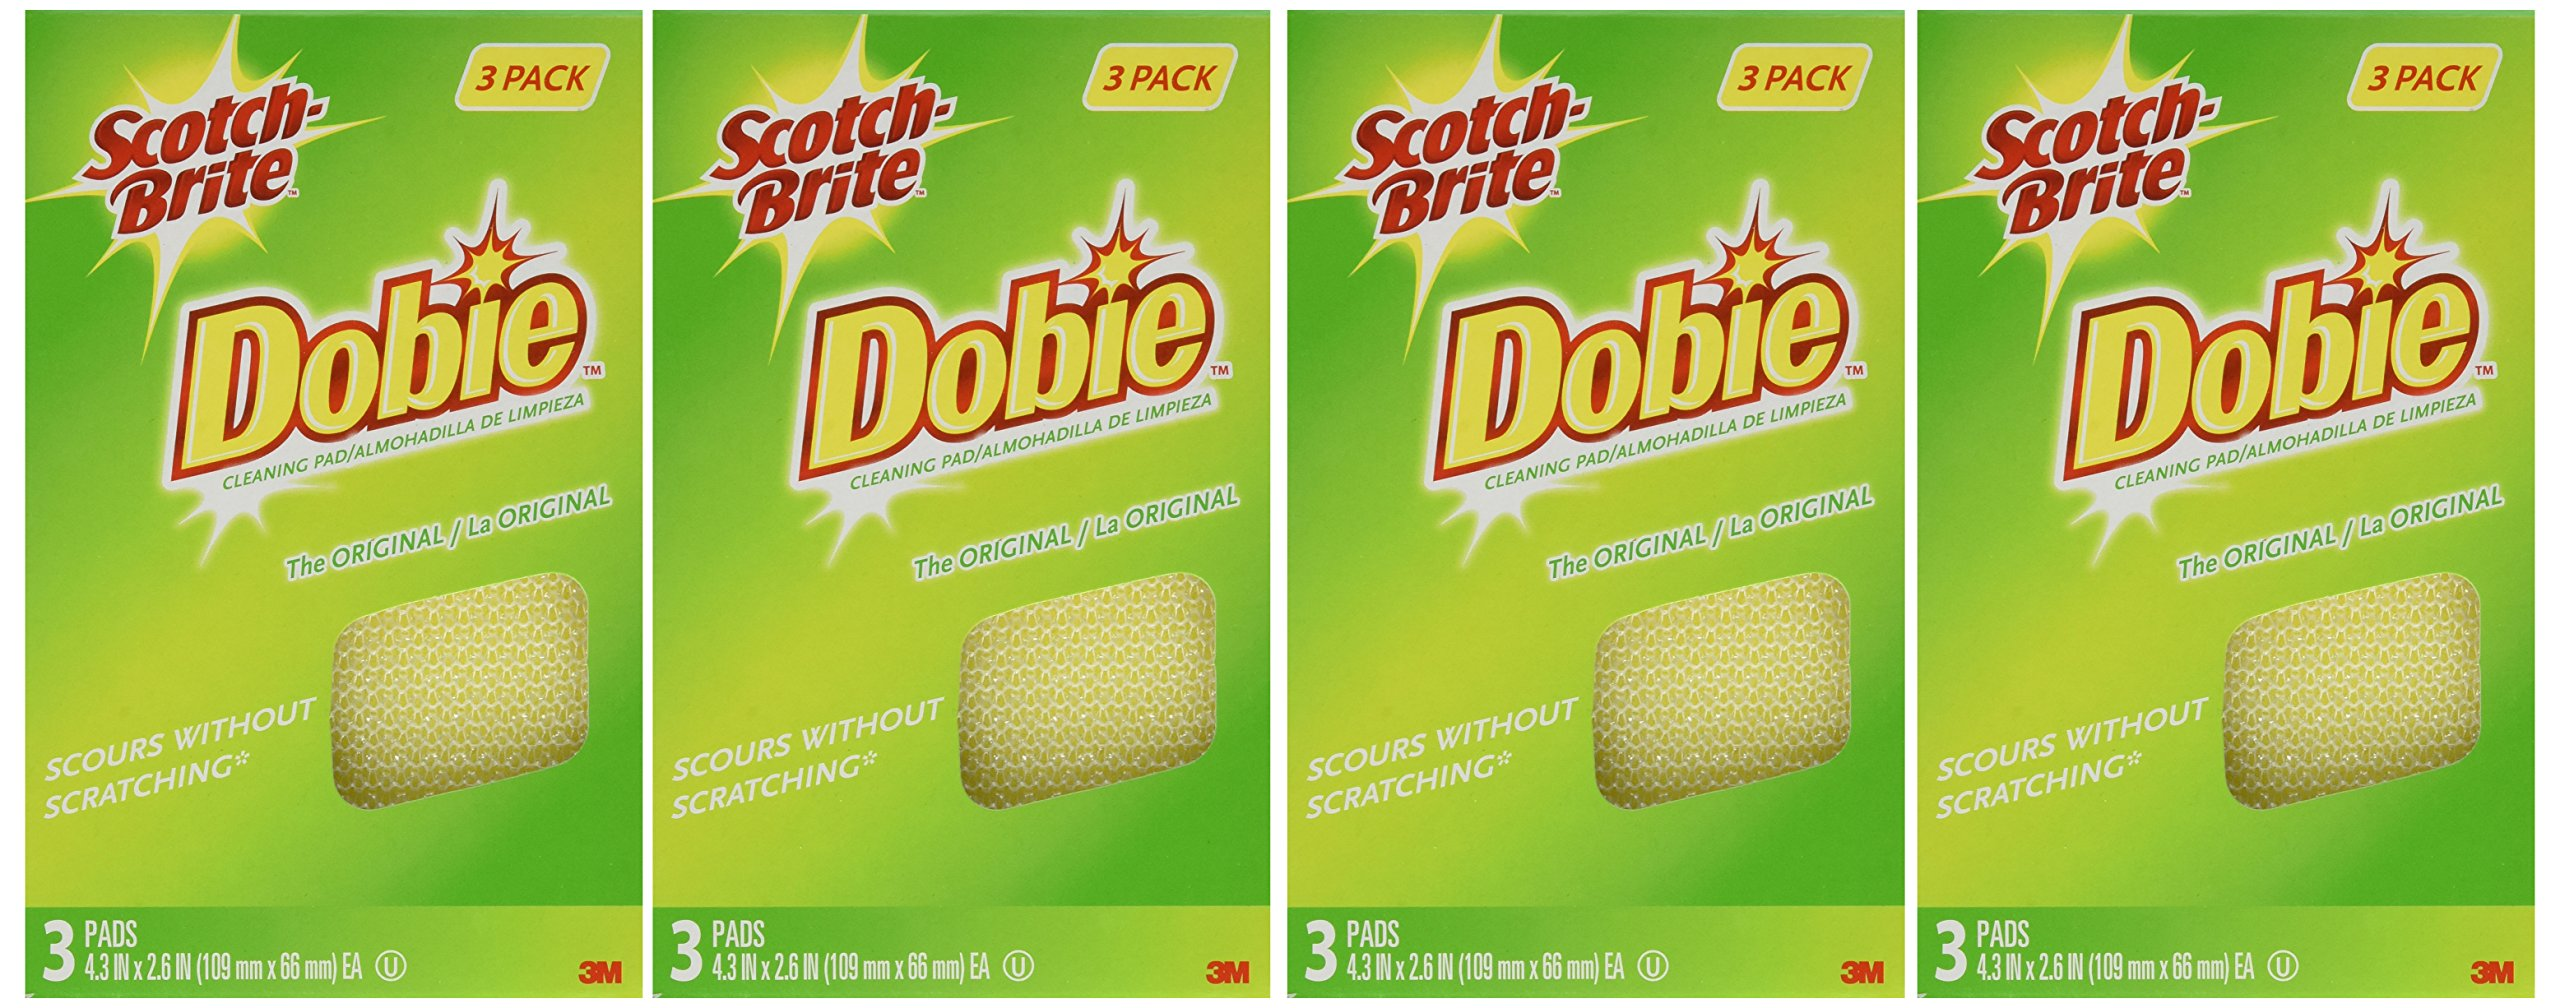 Scotch-Brite Dobie All Purpose Pads, 3-Count (Pack of 4) Total 12 Pads by 3M